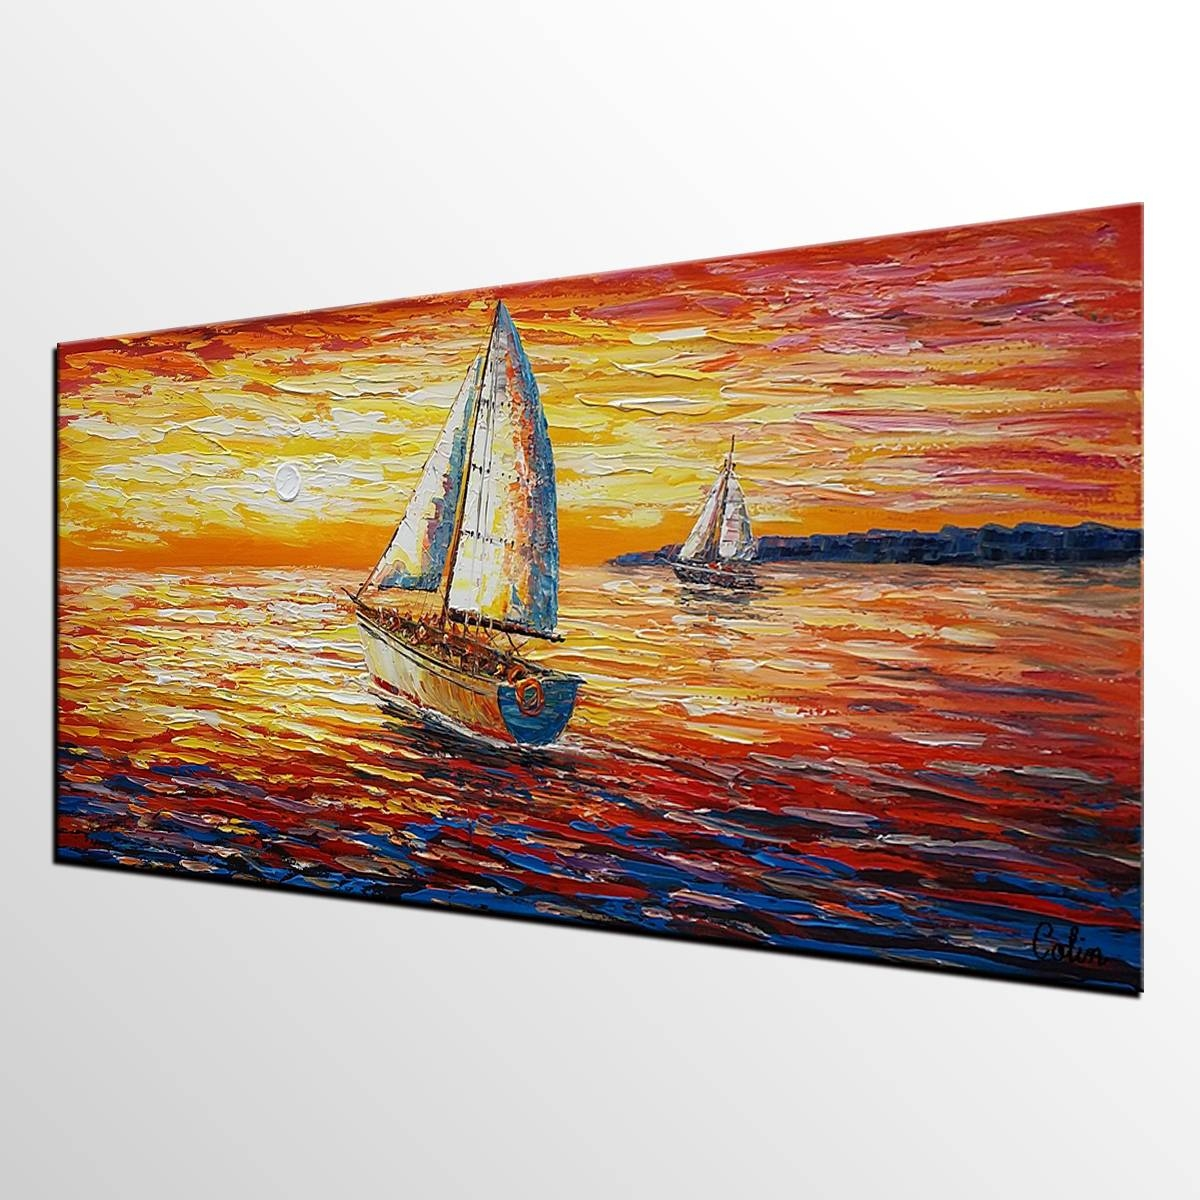 Original Wall Art, Sail Boat Painting, Seascape Painting, Abstract In Latest Boat Wall Art (View 13 of 20)